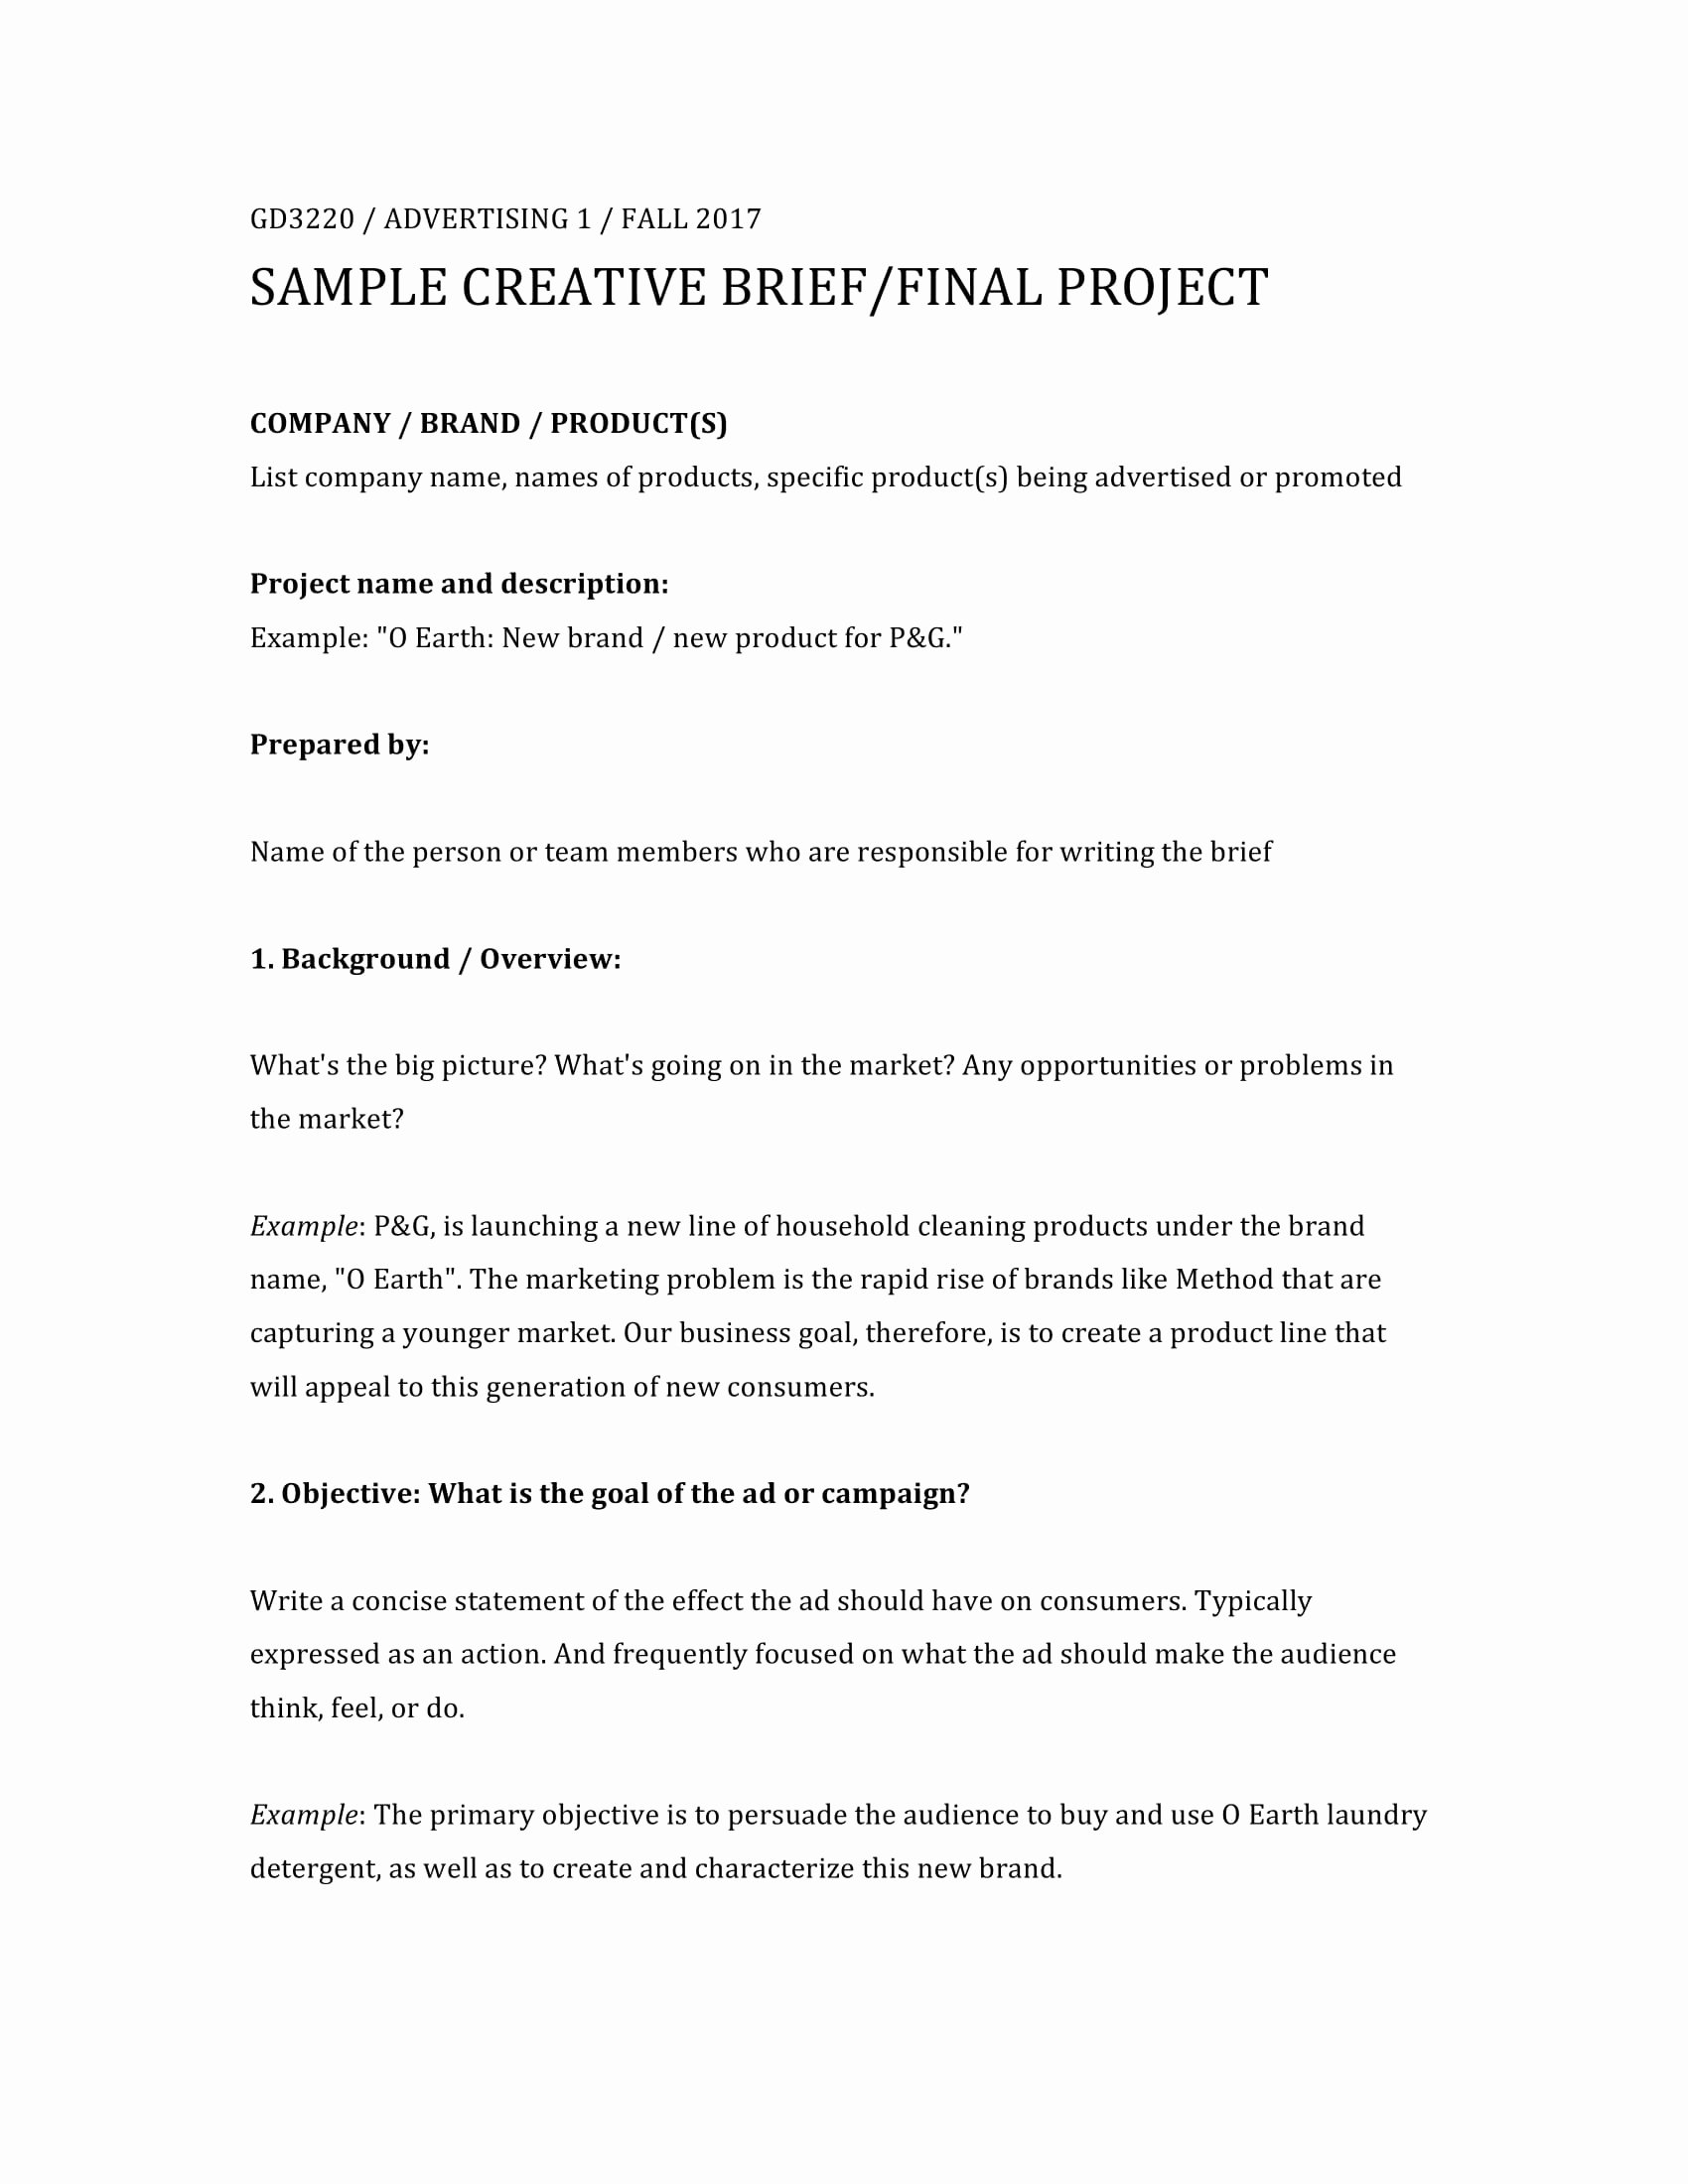 Creative Brief Sample Pdf Unique 32 Free Creative Brief Templates and Examples Pdf Doc